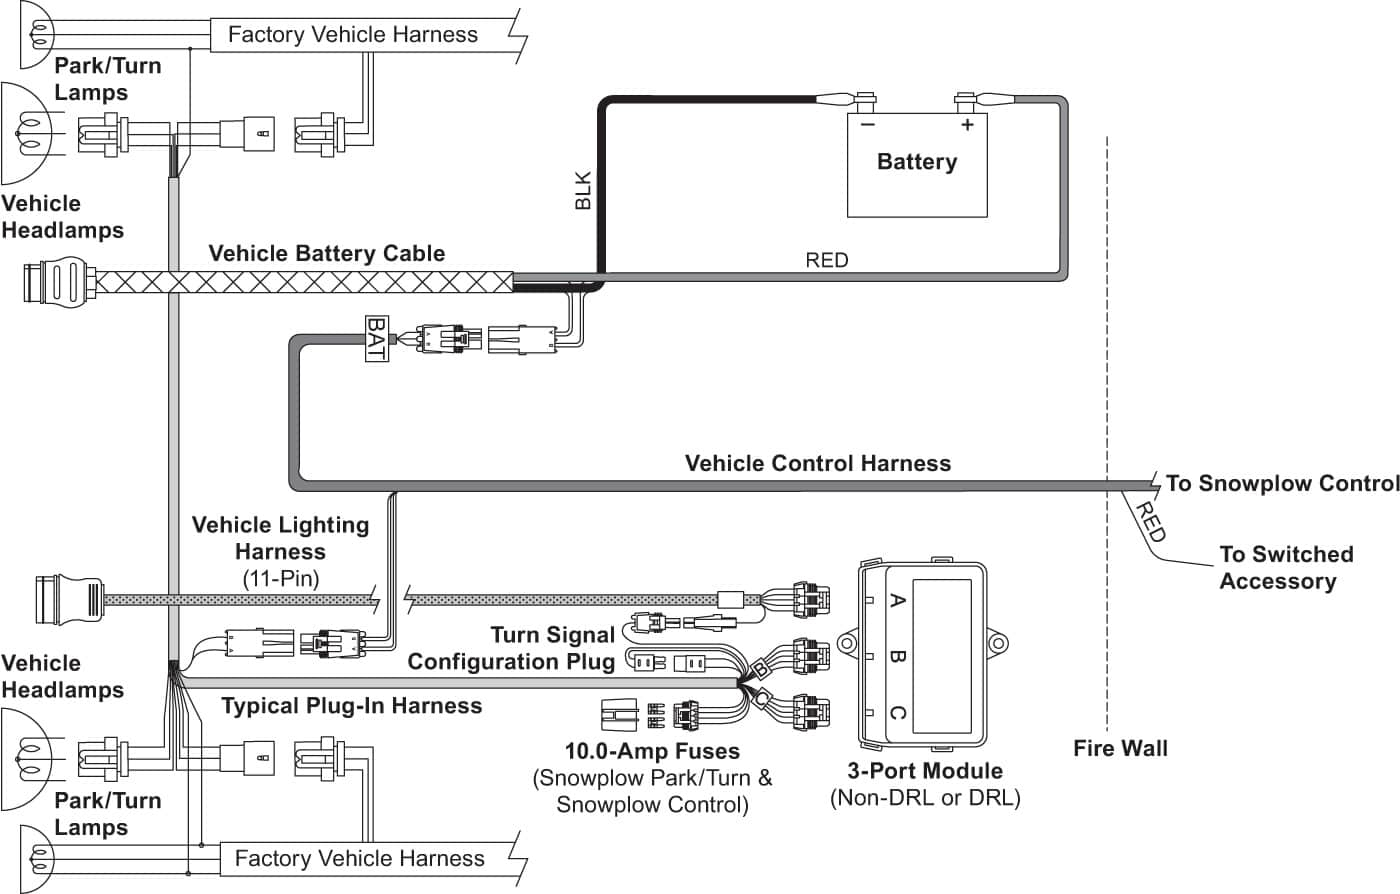 western snow plow wiring diagram Collection-Western Snow Plow Controller Wiring Diagram Download snow plow wiring diagram Luxury Fantastic Western Unimount 8-t